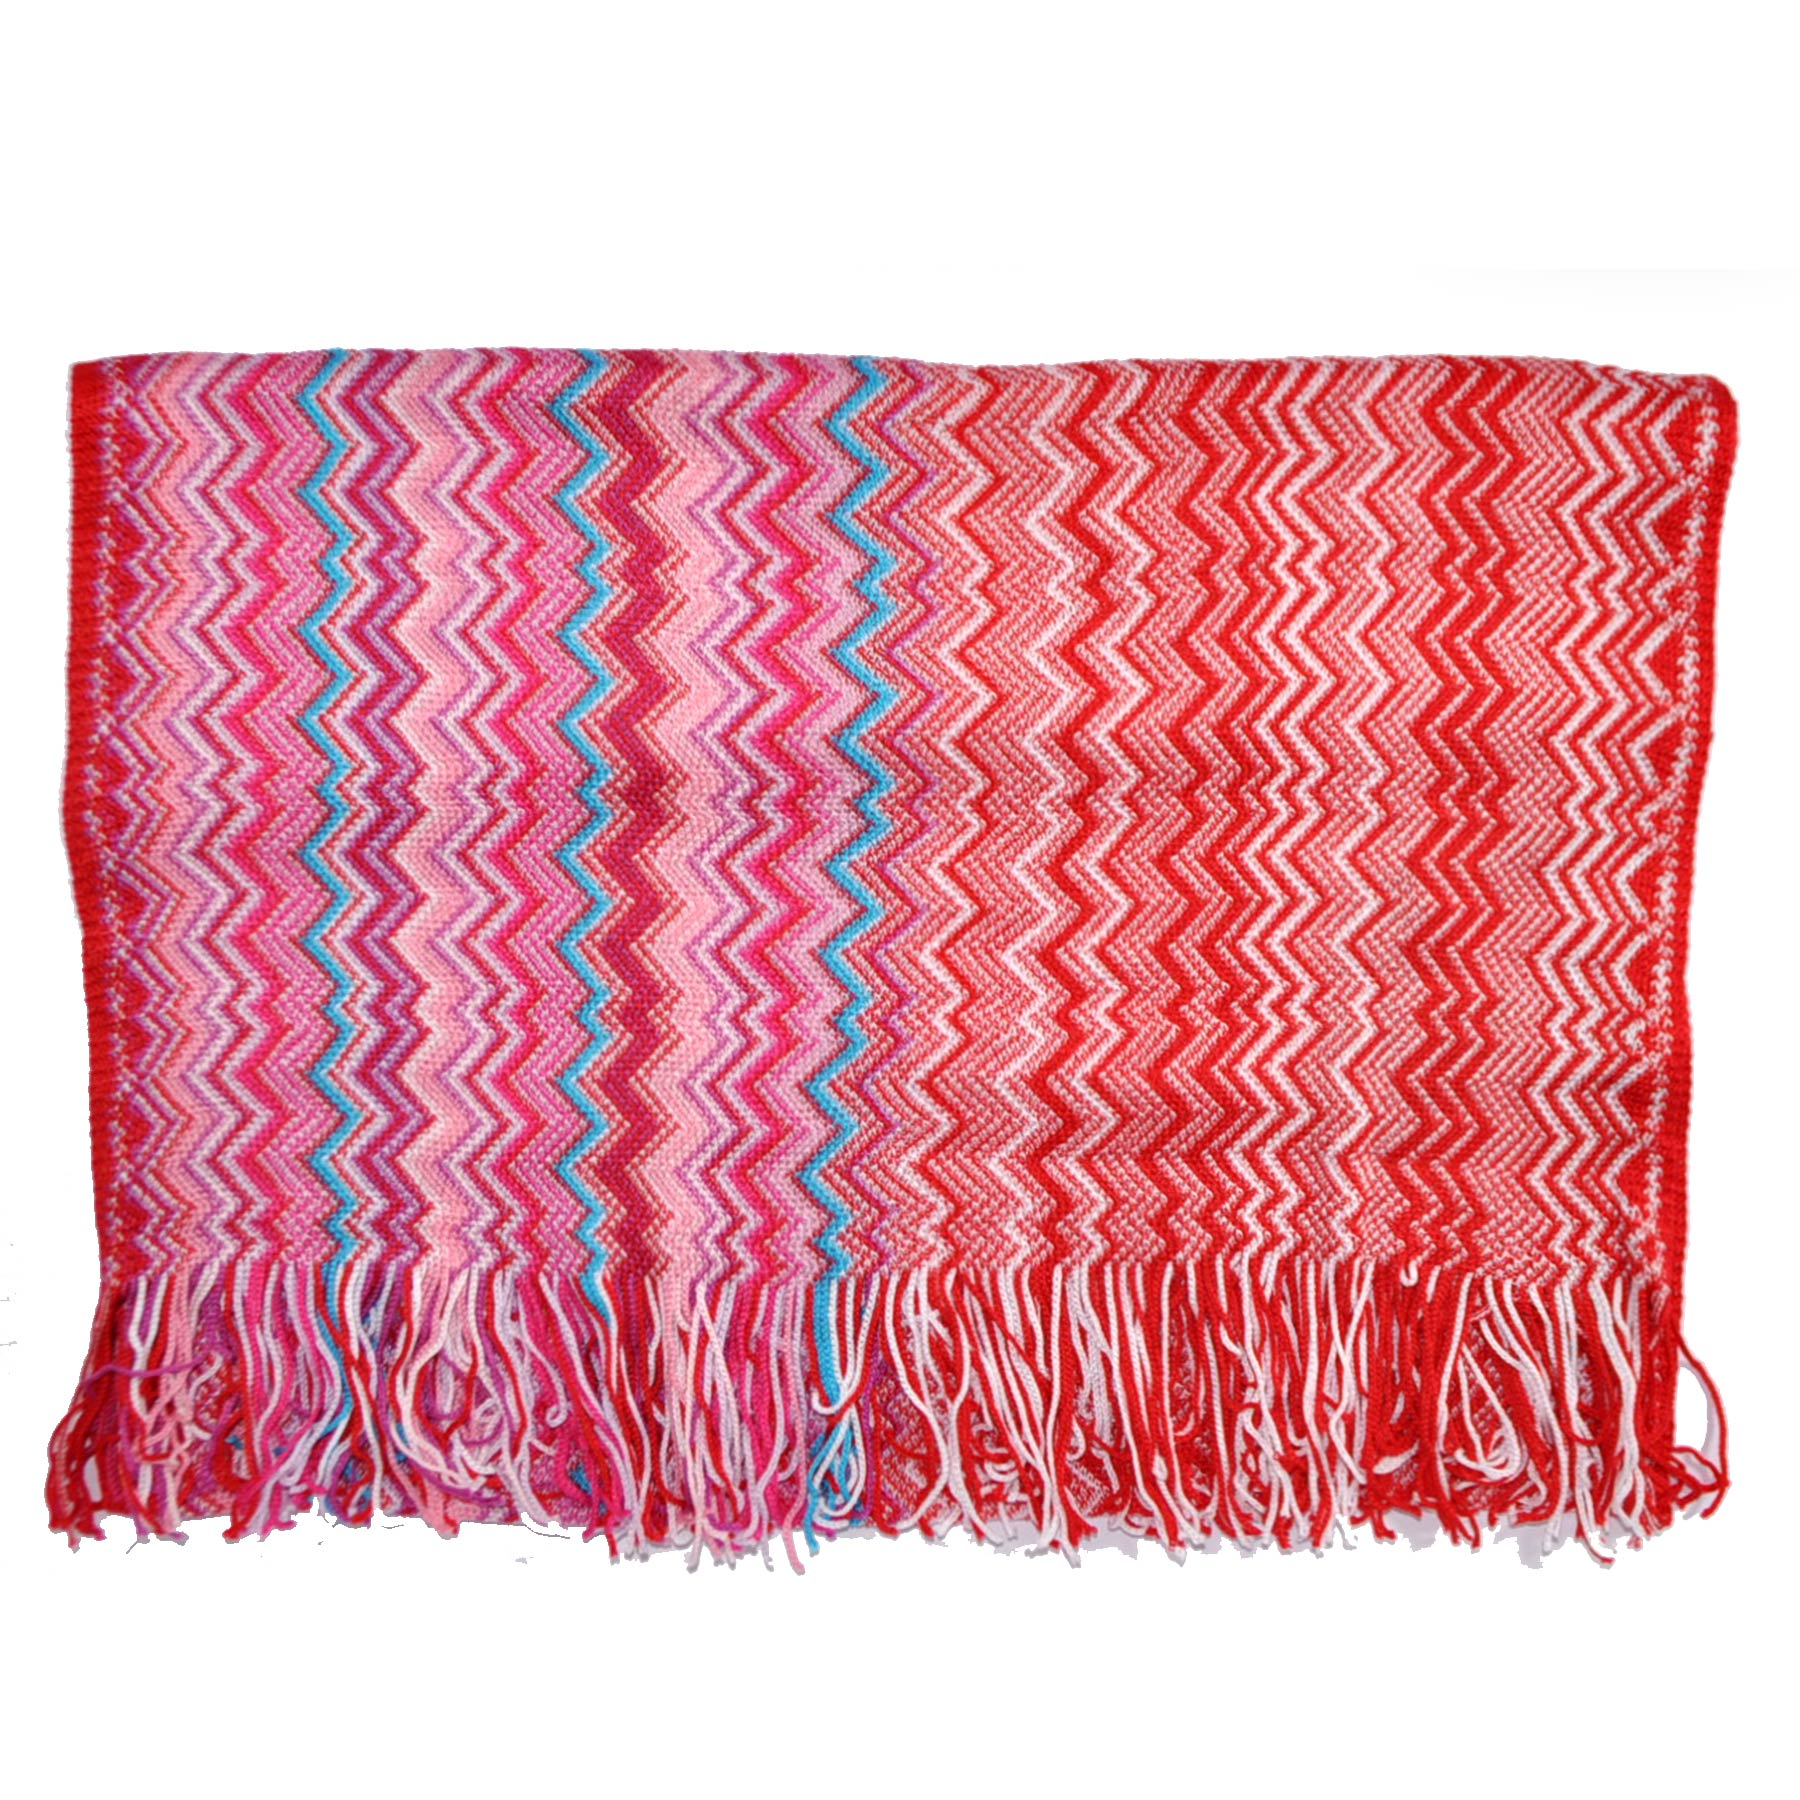 Missoni Scarf Pink Red Aqua Zigzag Stripes Cotton Shawl